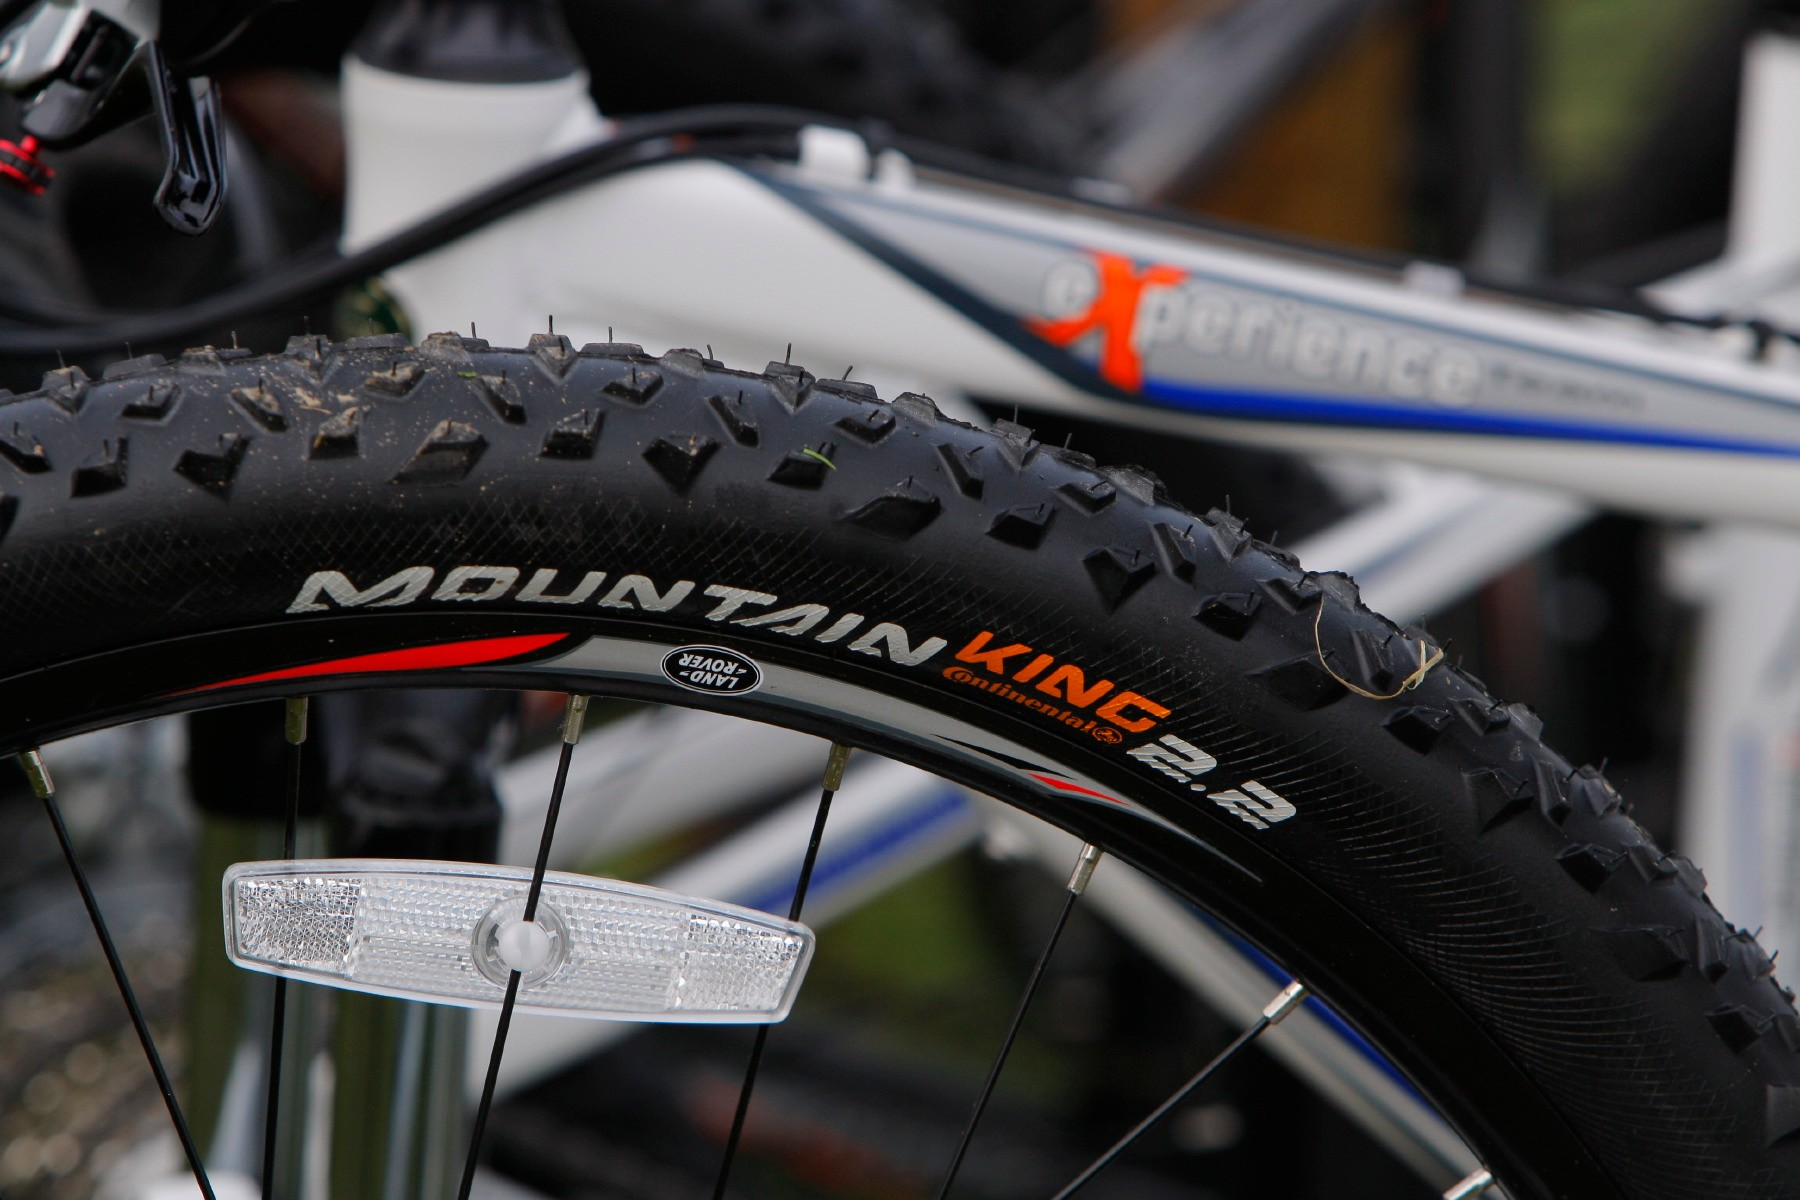 Continental Mountain King tyres are specced for optimum rolling and mud clearing properties